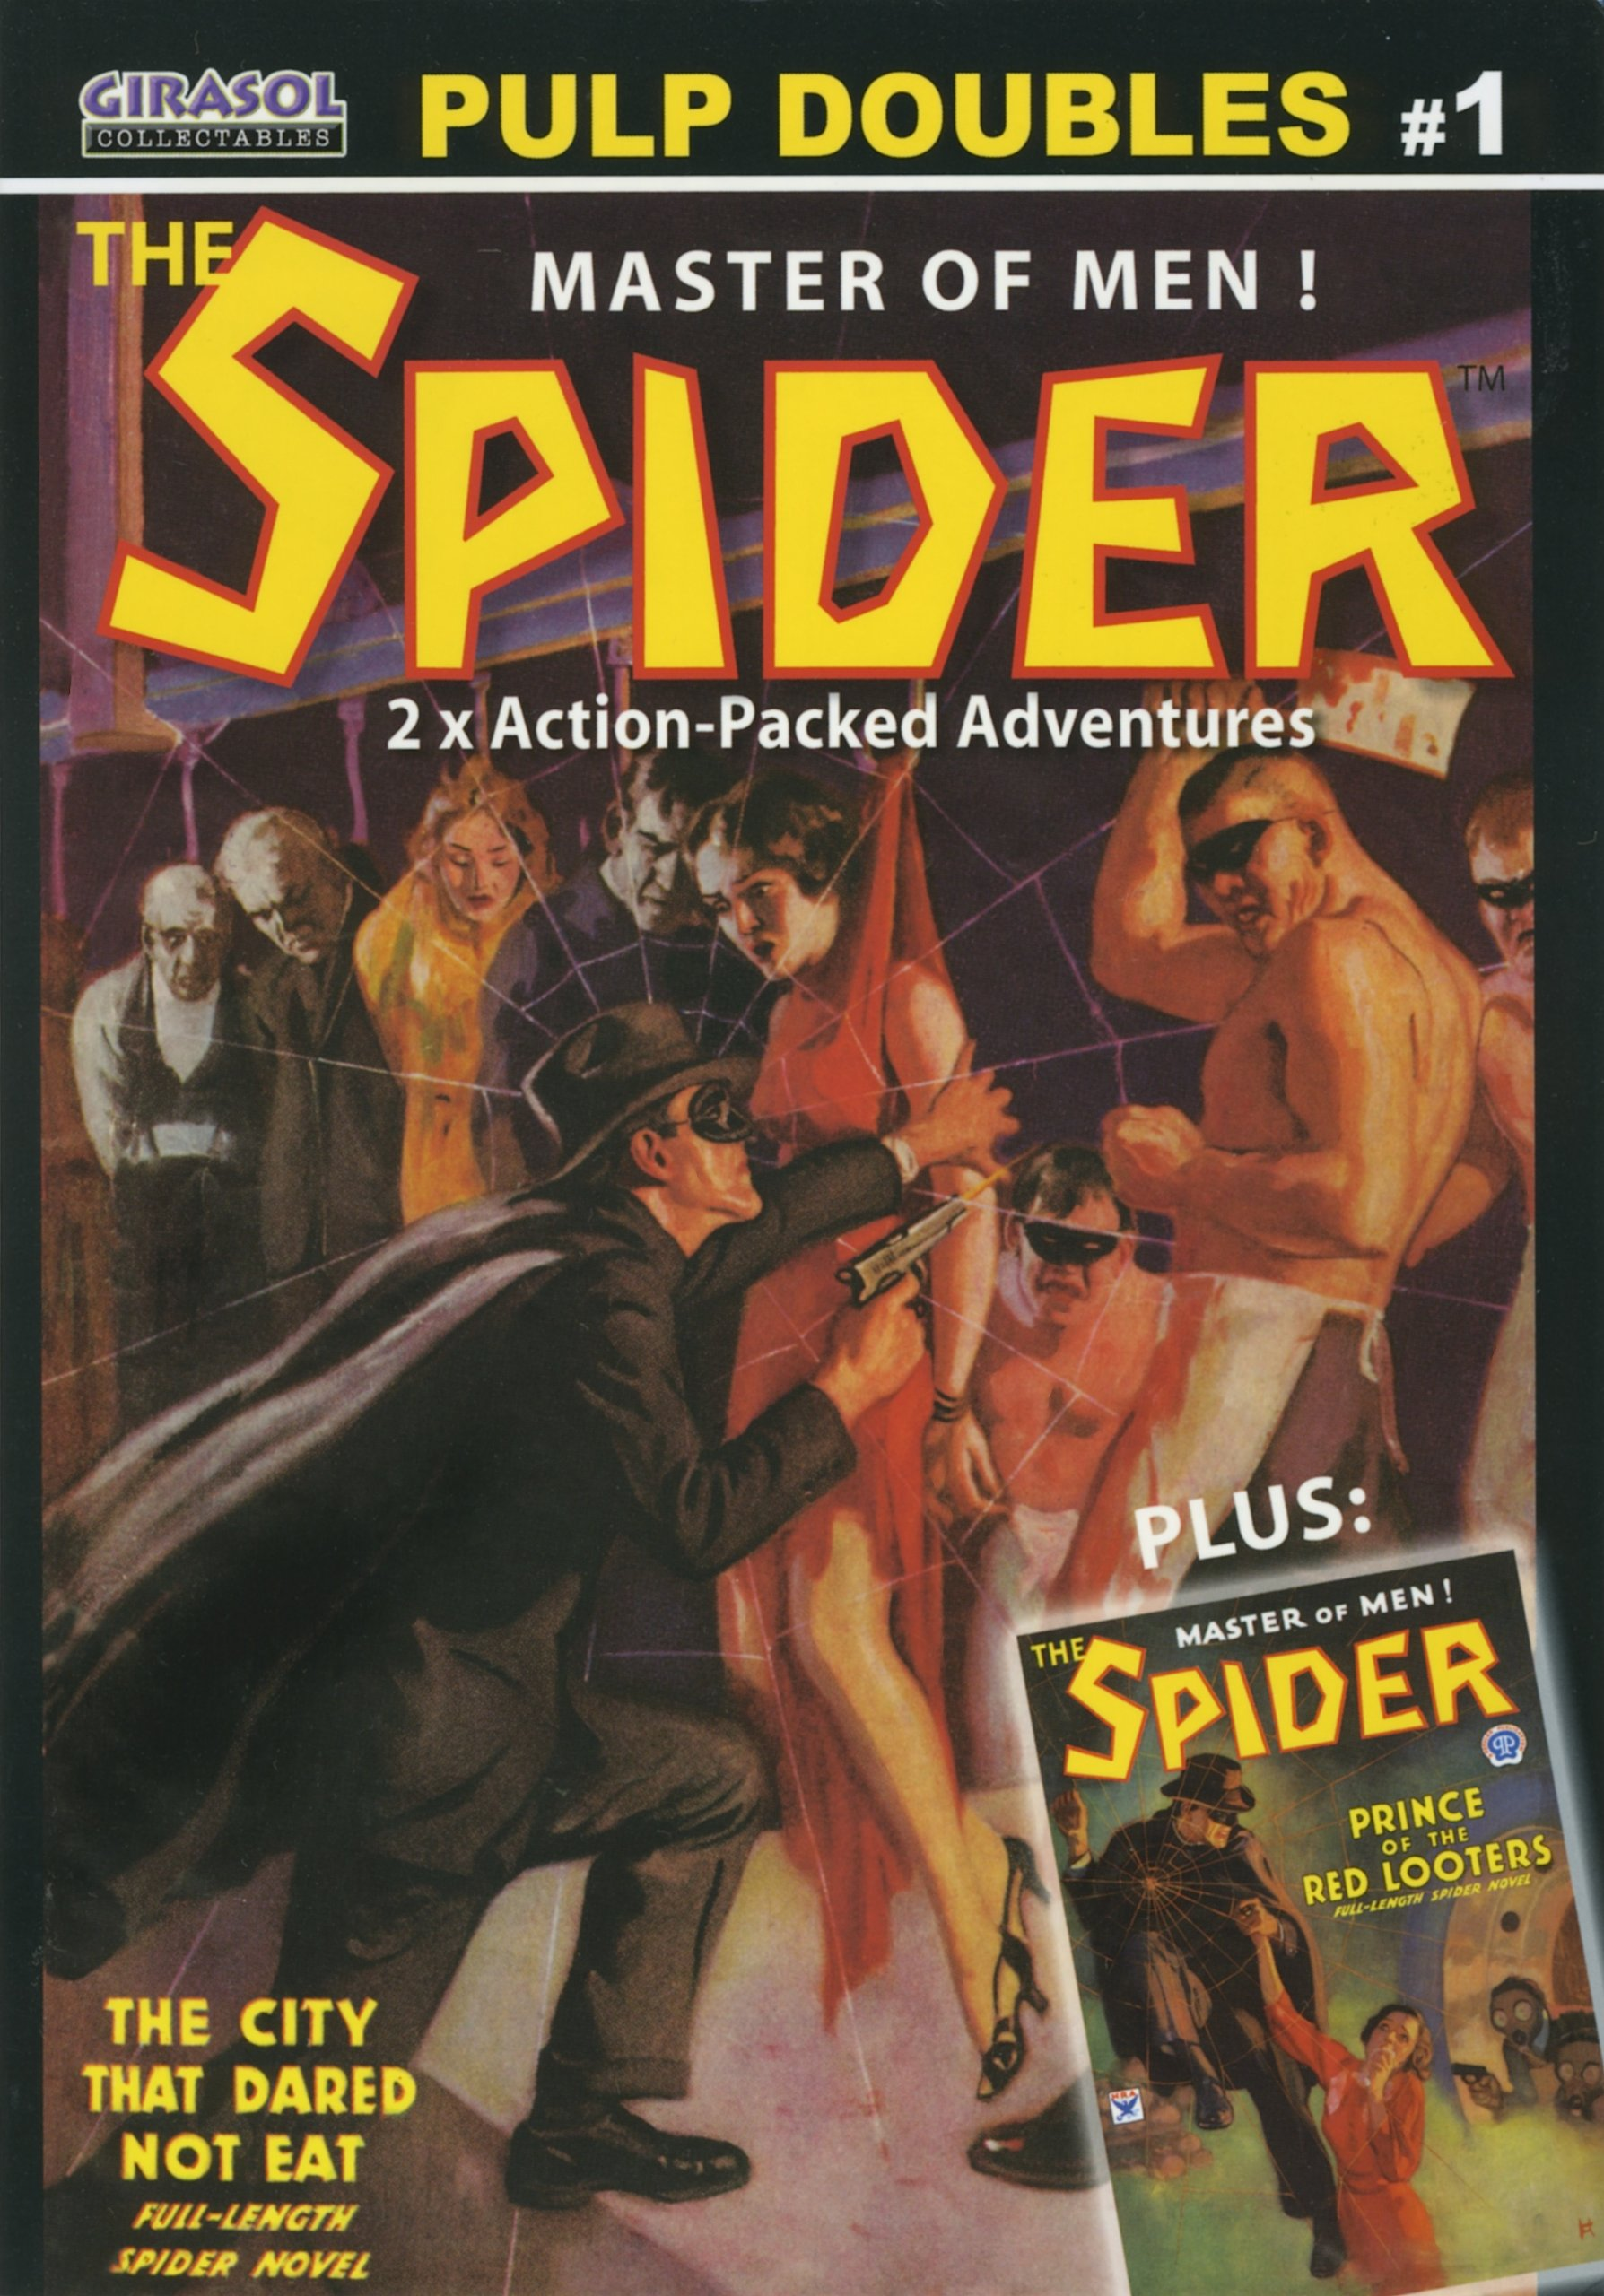 Download THE SPIDER - Master of Men - Pulp Doubles (1) One: The City That Dared Not Eat - and - Prince of the Red Looters pdf